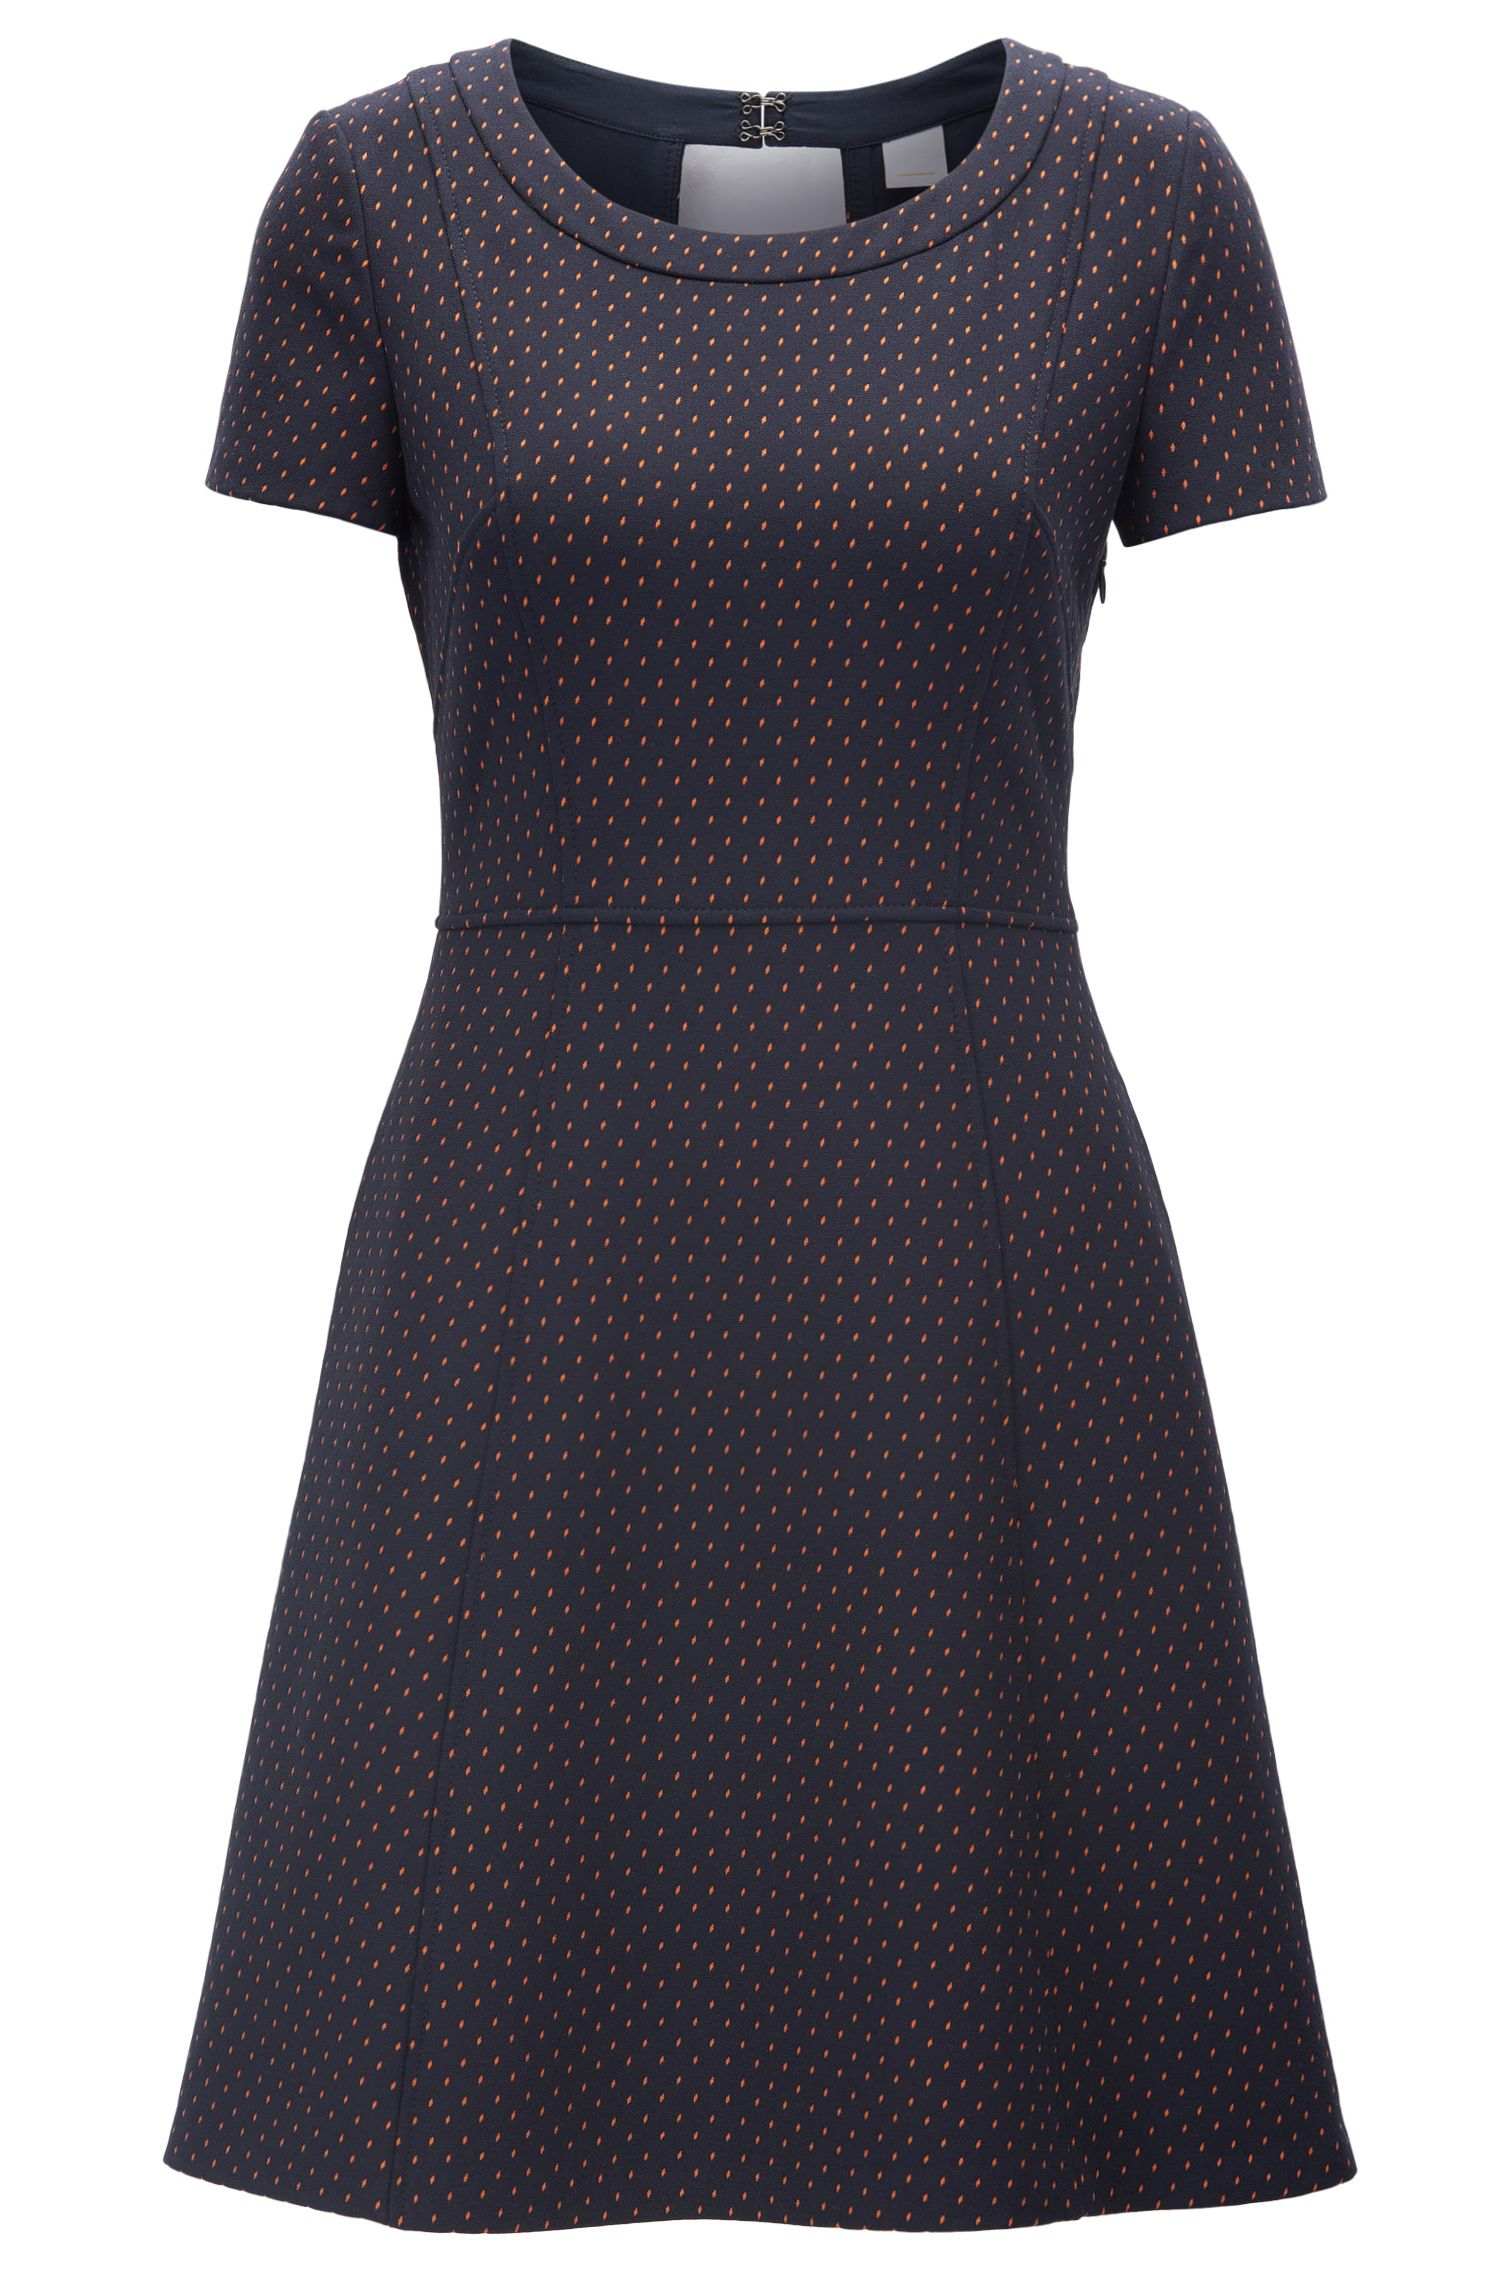 Waisted dress in patterned stretch fabric